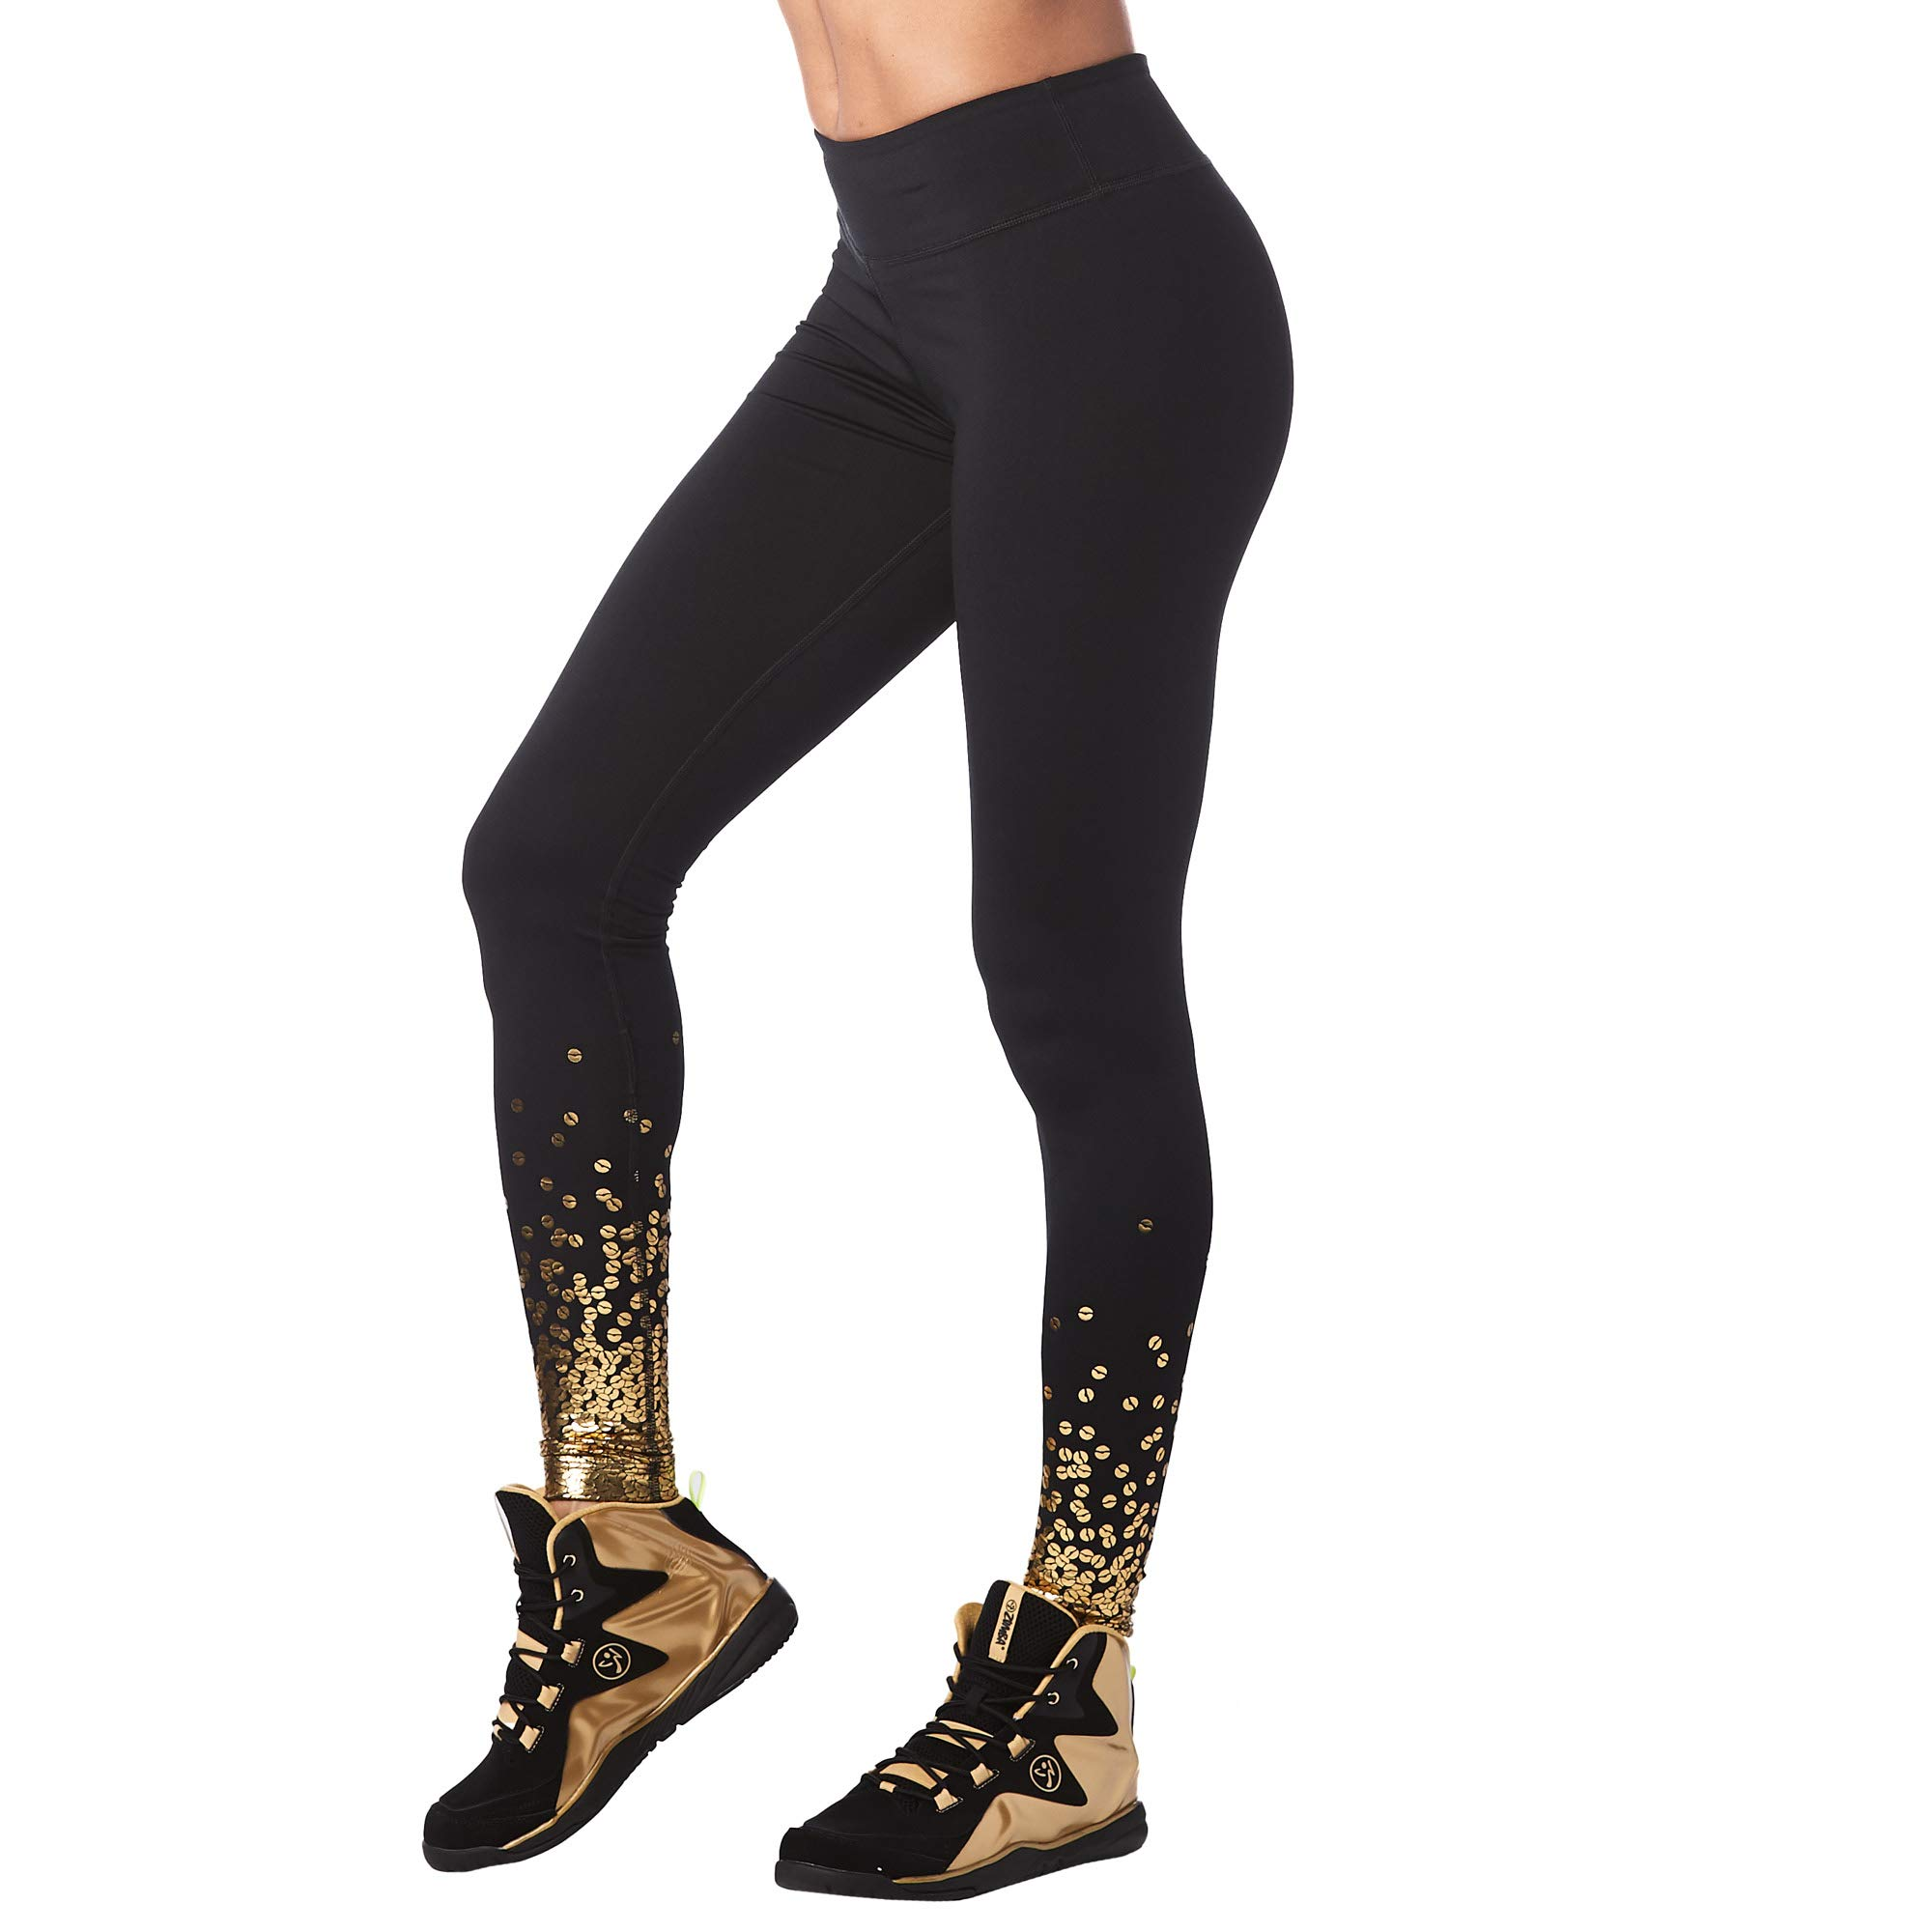 Zumba Wide Waistband Dance Fitness Compression Fit Workout Metallic Leggings for Women by Zumba